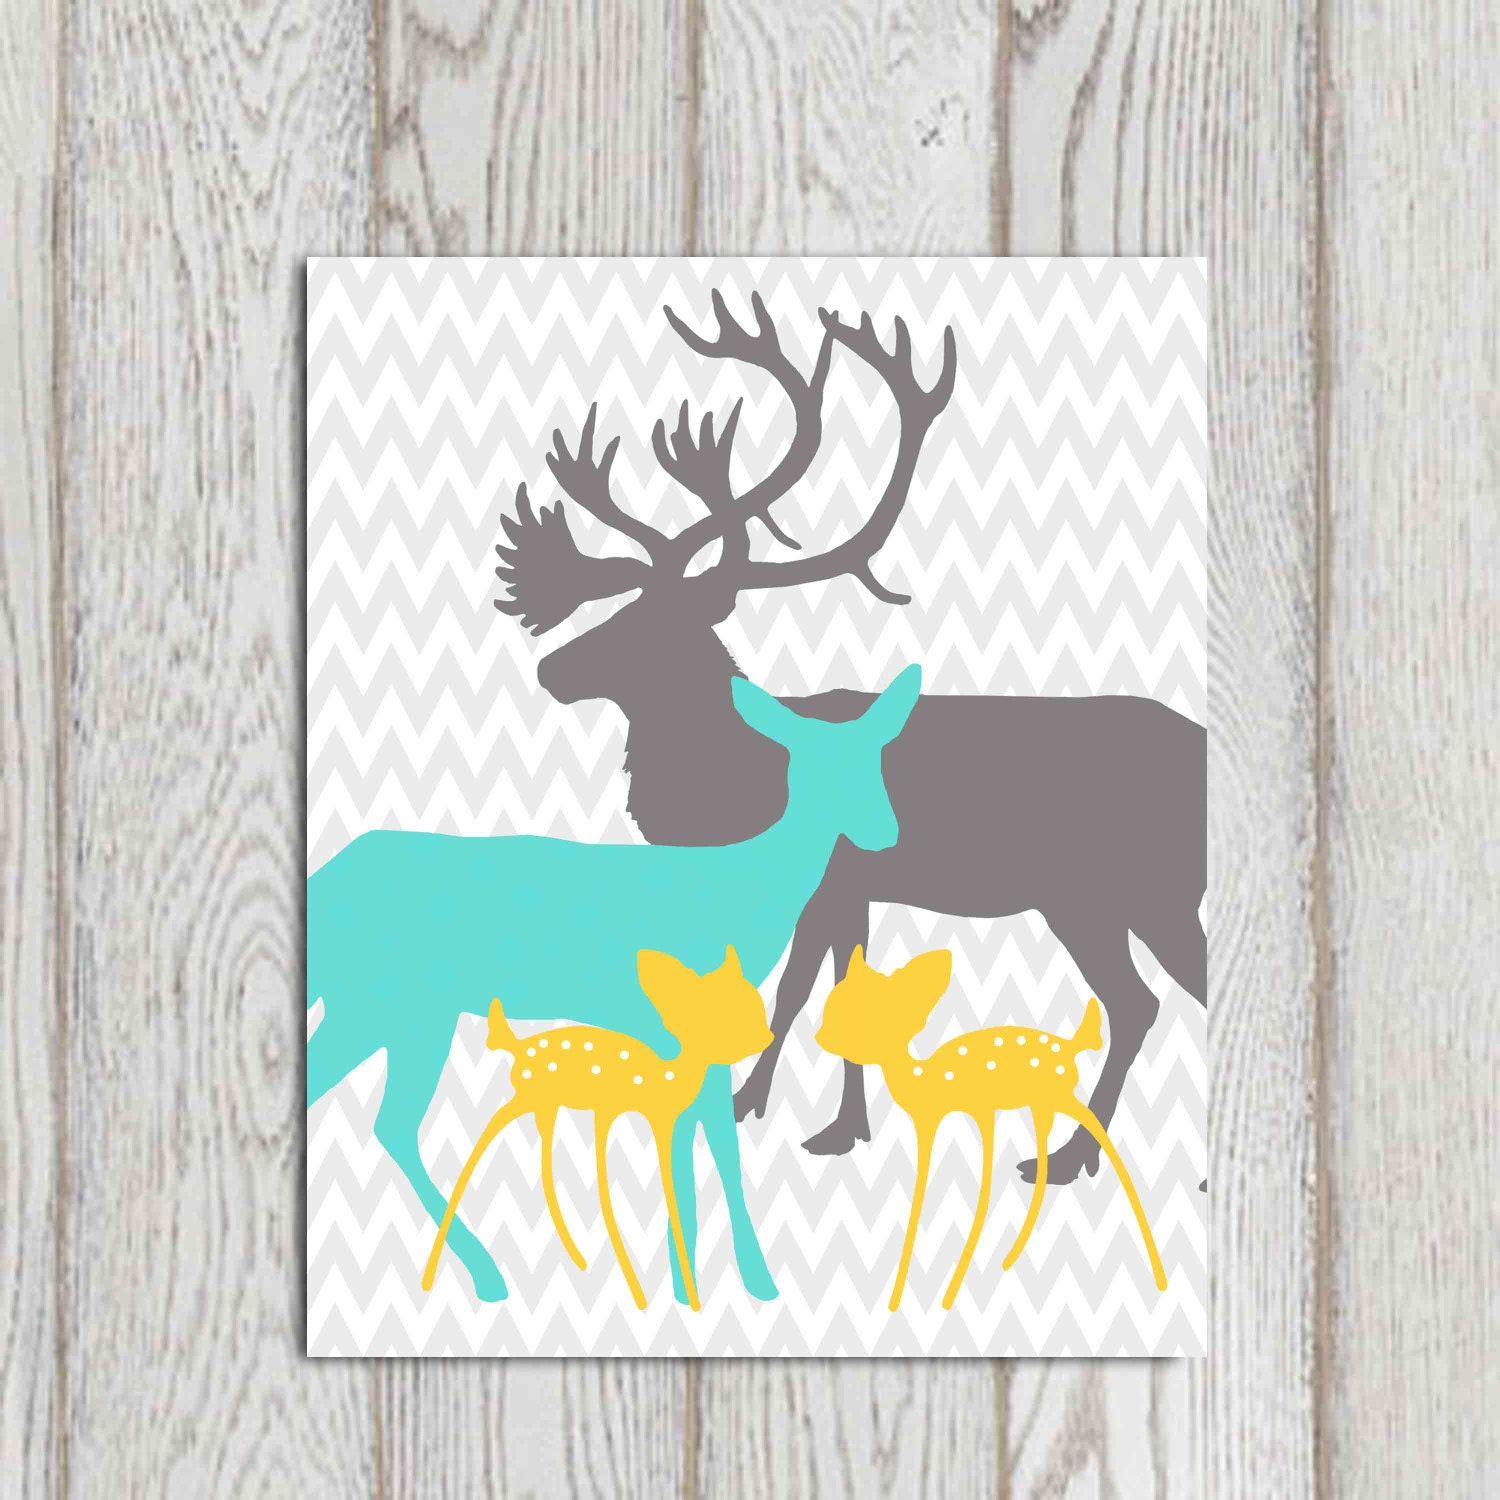 Elephant Twin Nursery Wall Art Nursery Room Decor For Twins: Twin Bedroom Printable Deer Family Print Nursery Wall Decor